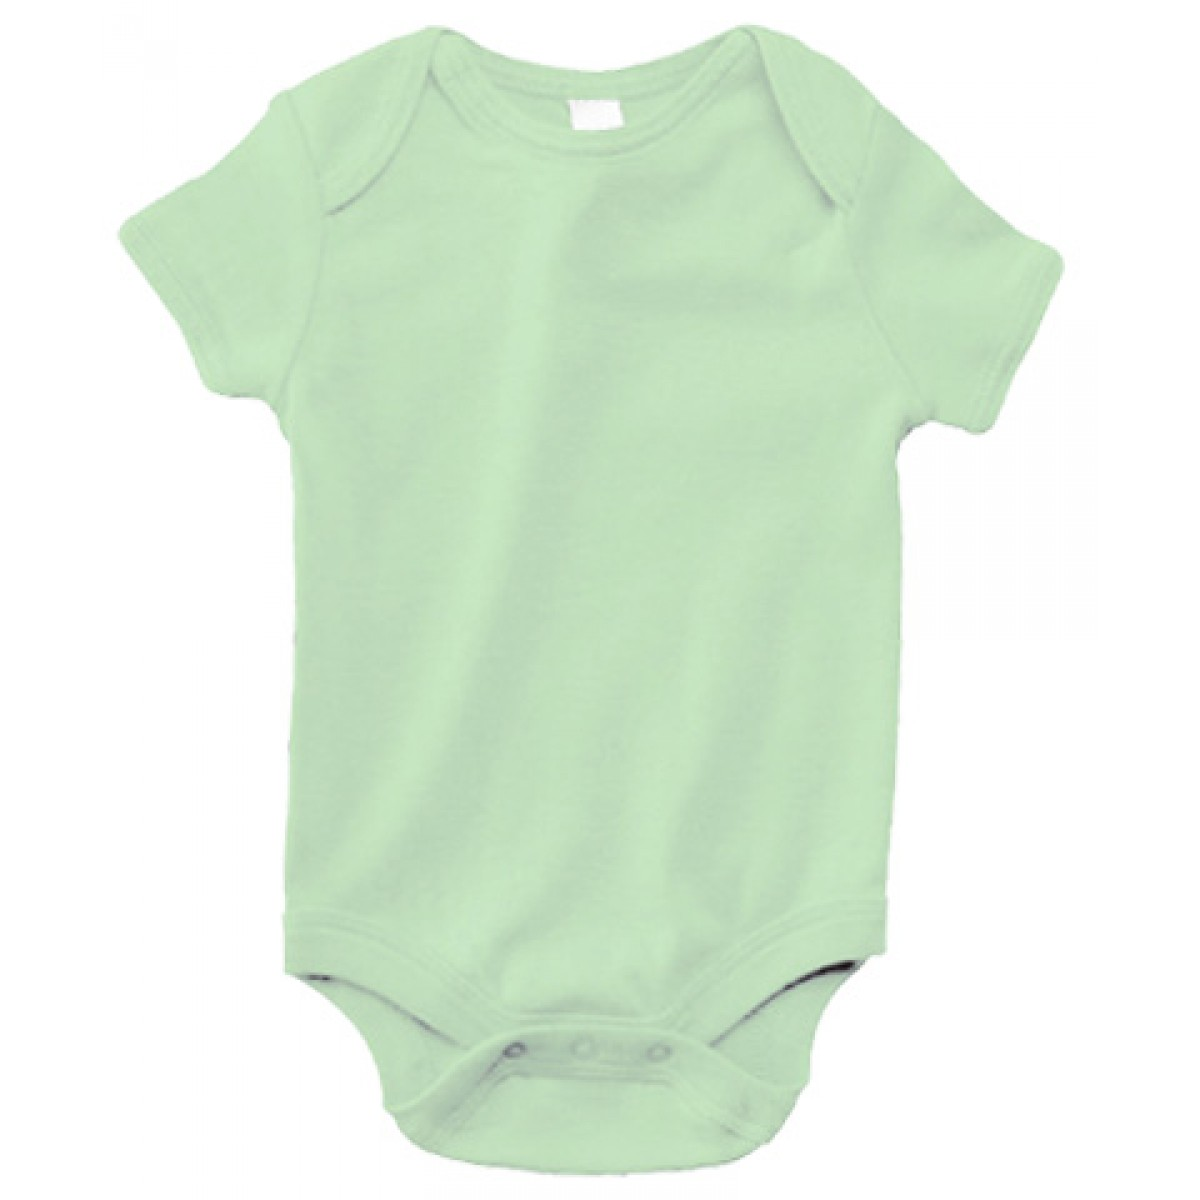 Pale Green B100 Bella + Canvas Infants'Short-Sleeve Baby -Pale Green-6-12 Months